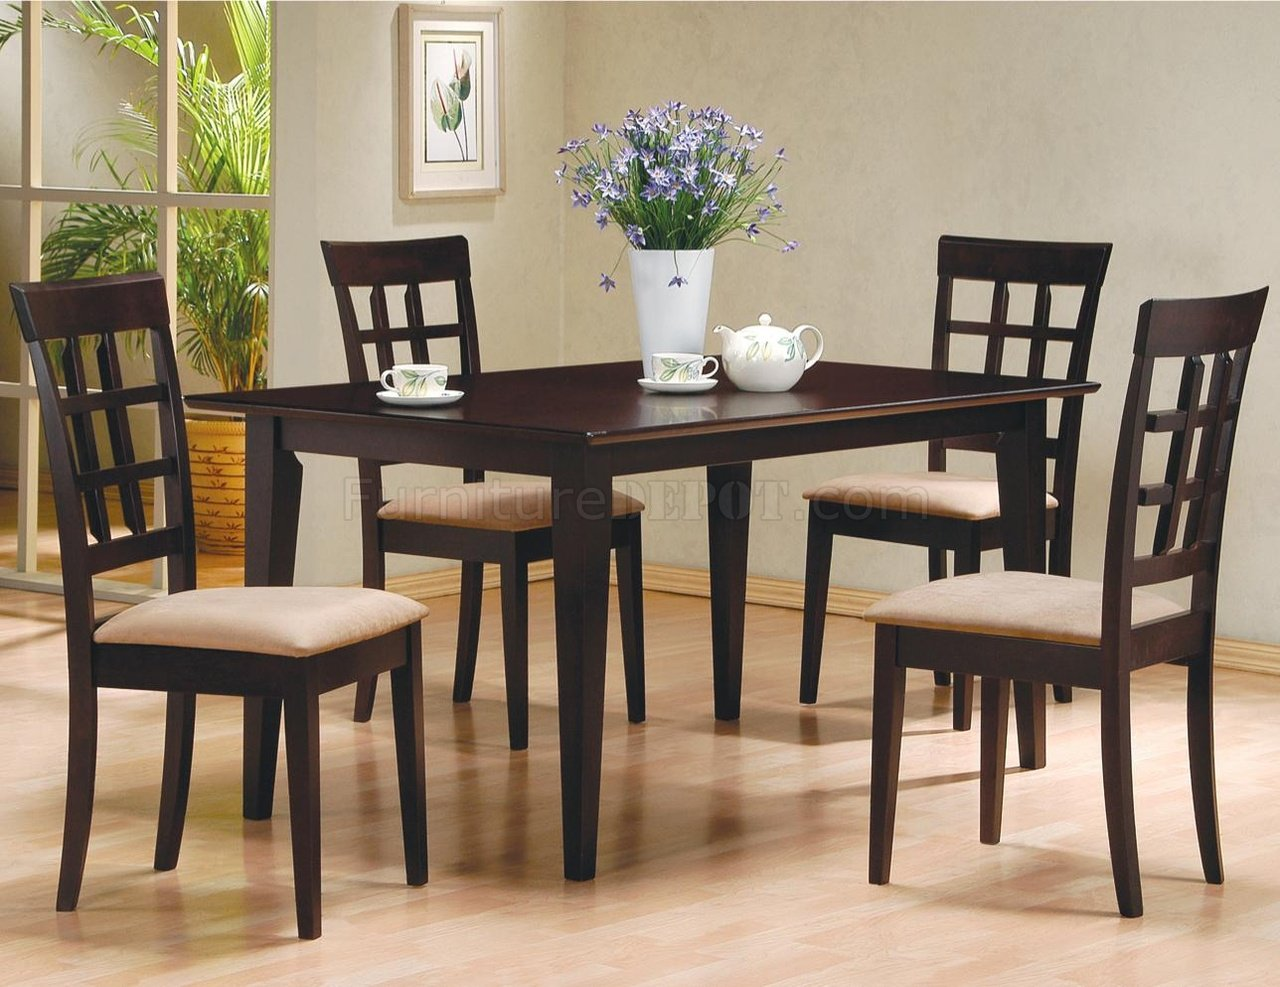 Cappuccino finish 5pc modern dinette set w microfiber seats for Modern dining furniture